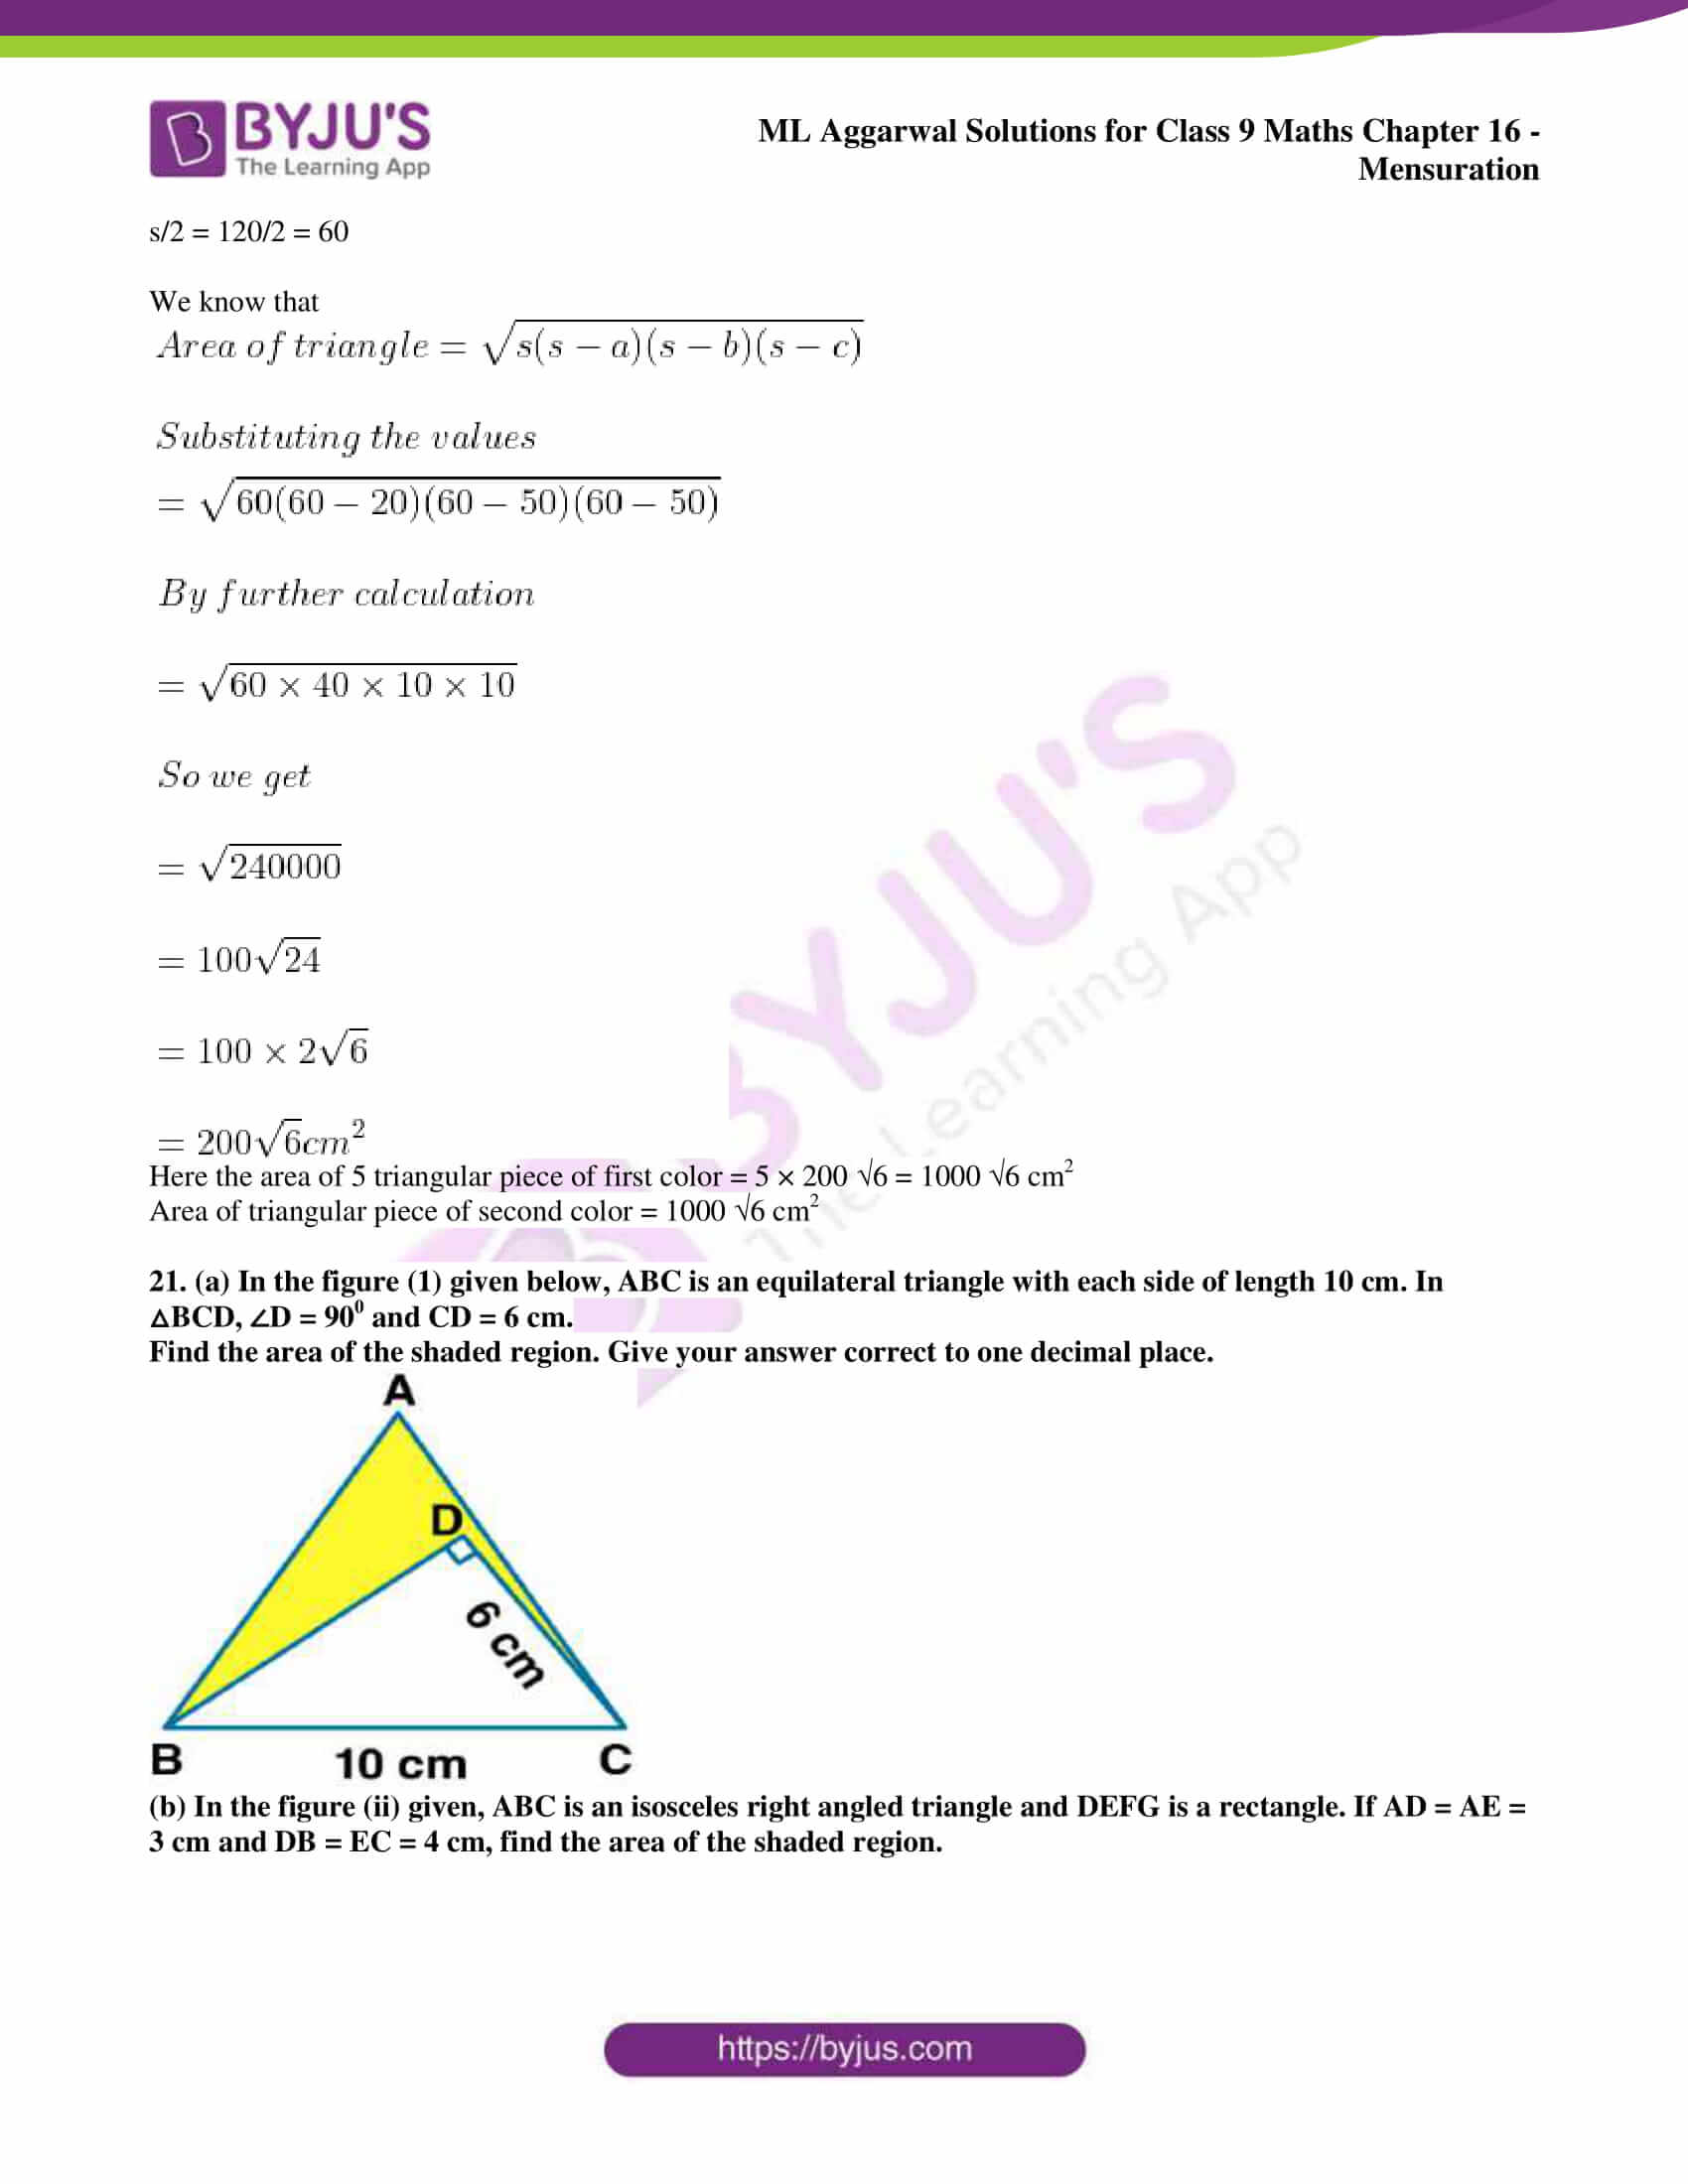 ml aggarwal solutions for class 9 maths chapter 16 020